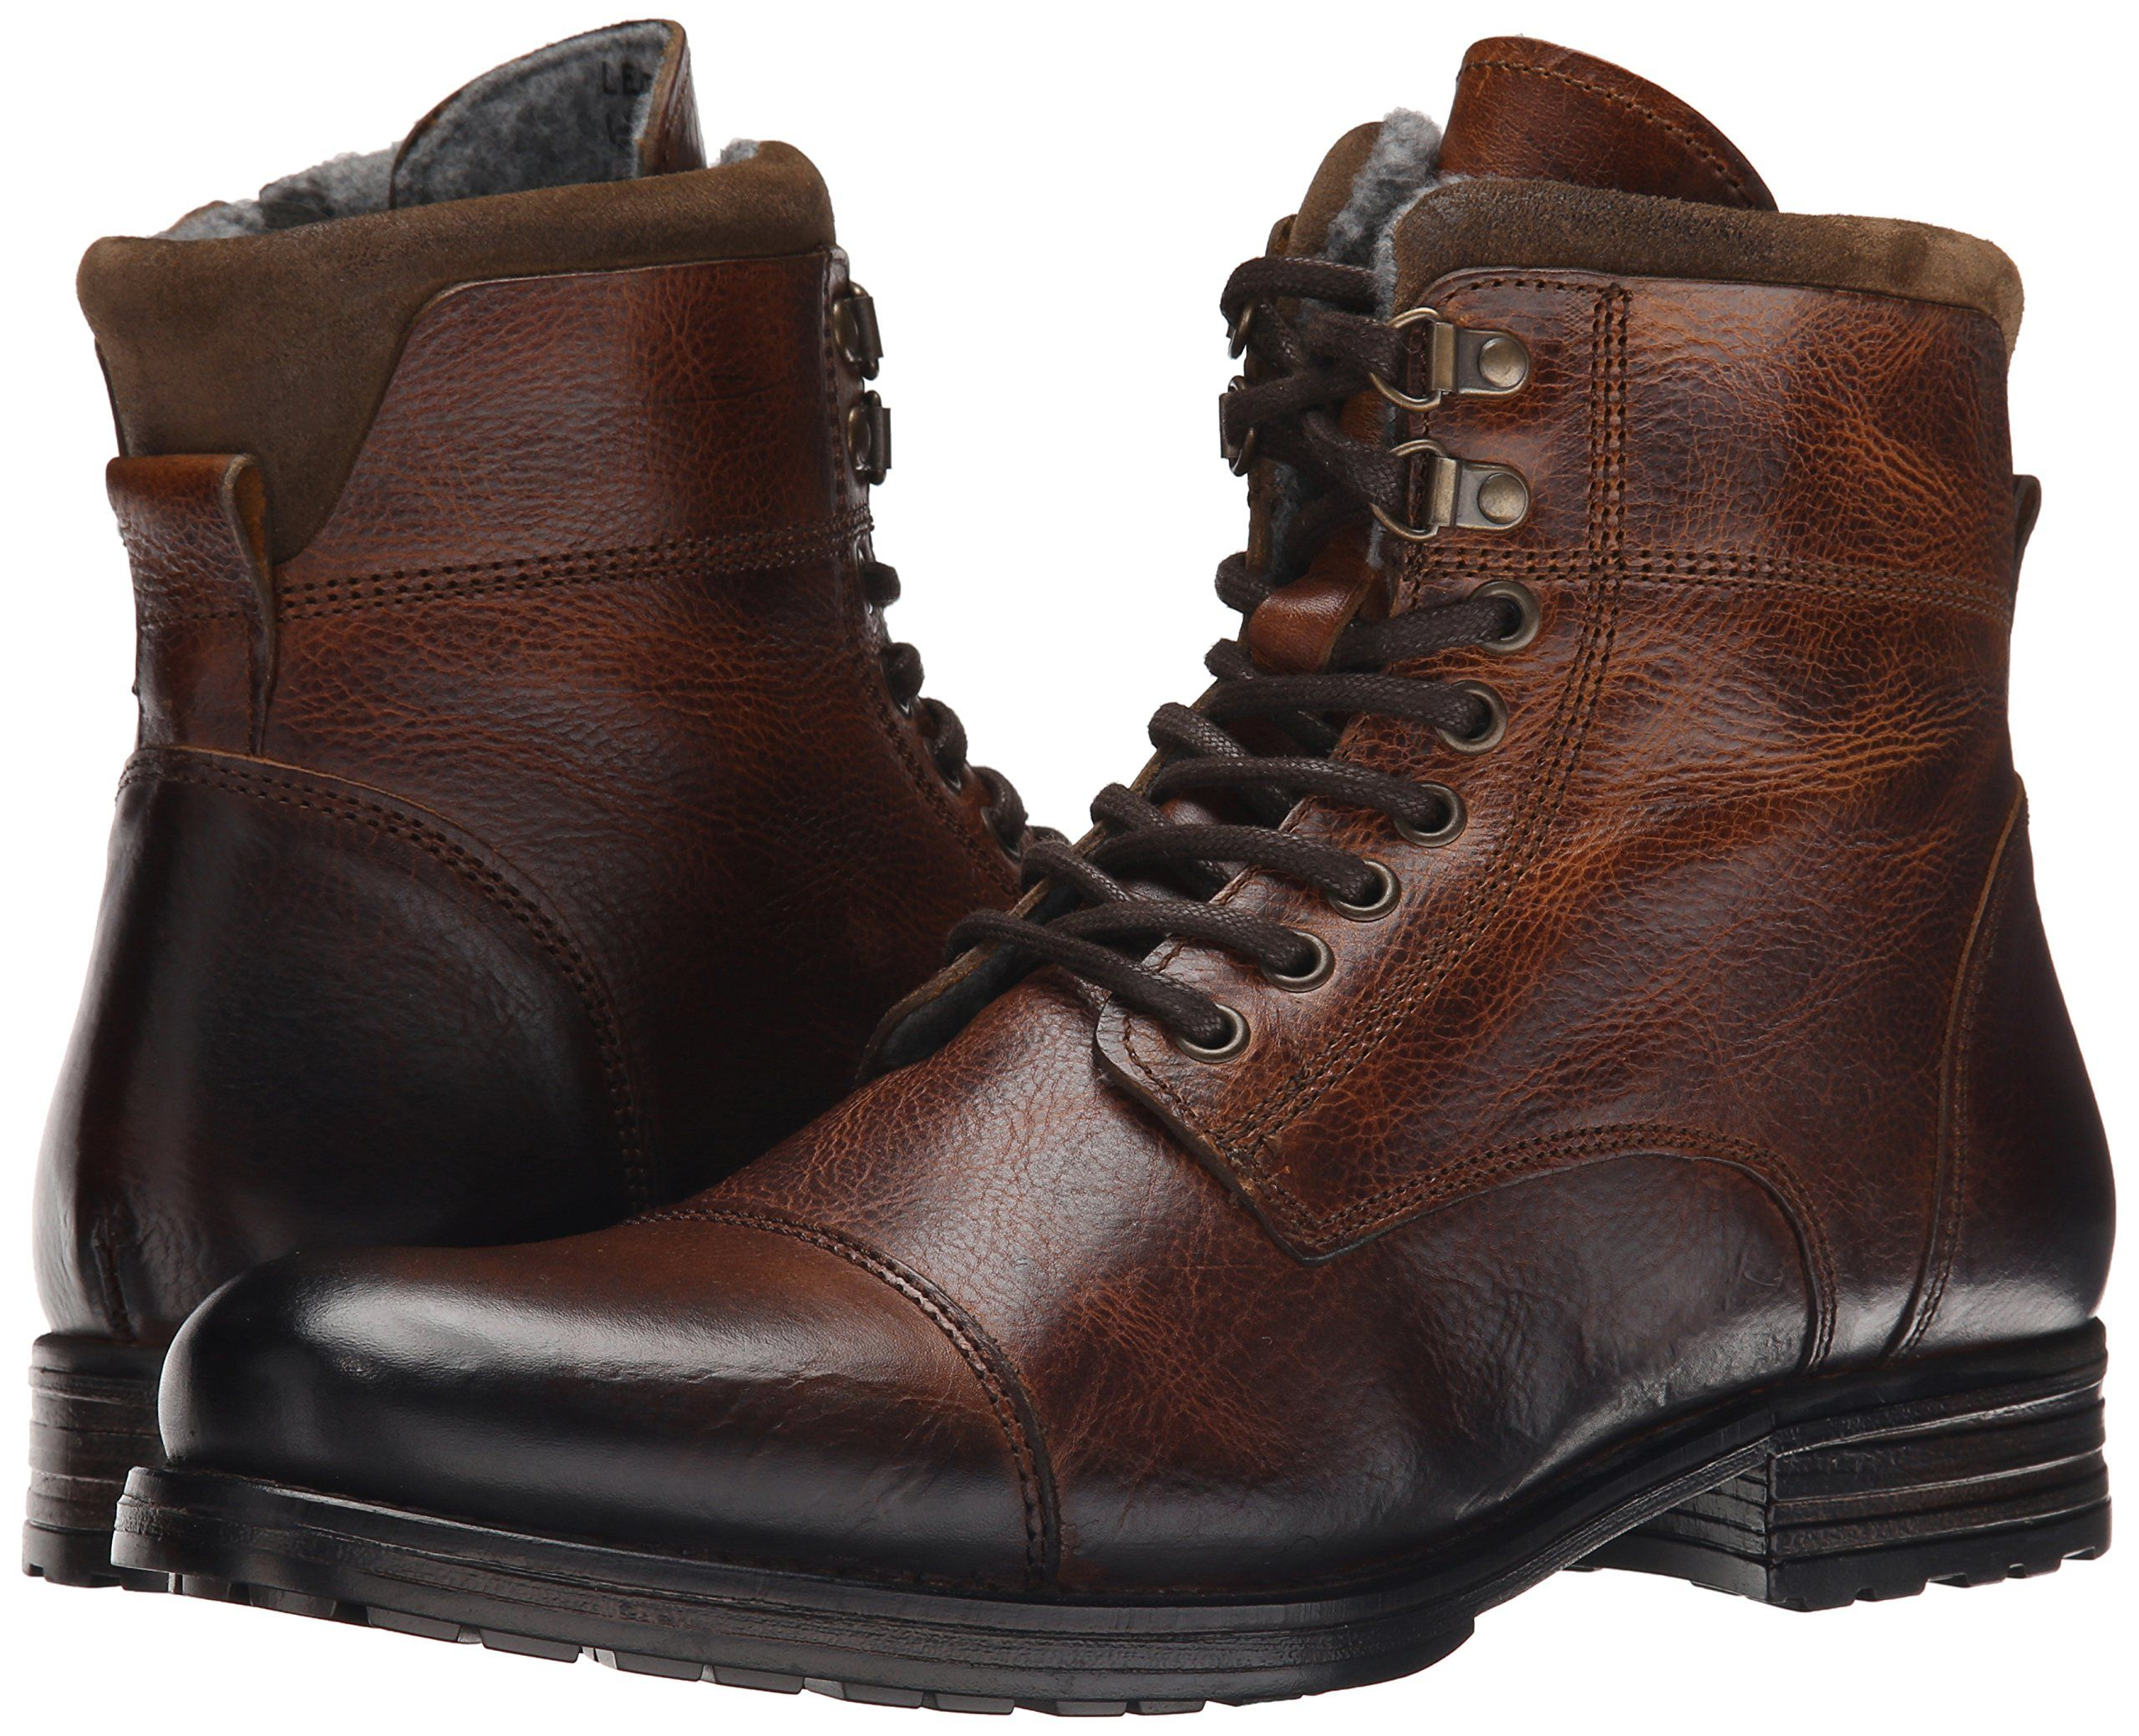 Amazon.com: Aldo Men's Giannola Boot: Shoes | Men's Clothing ...